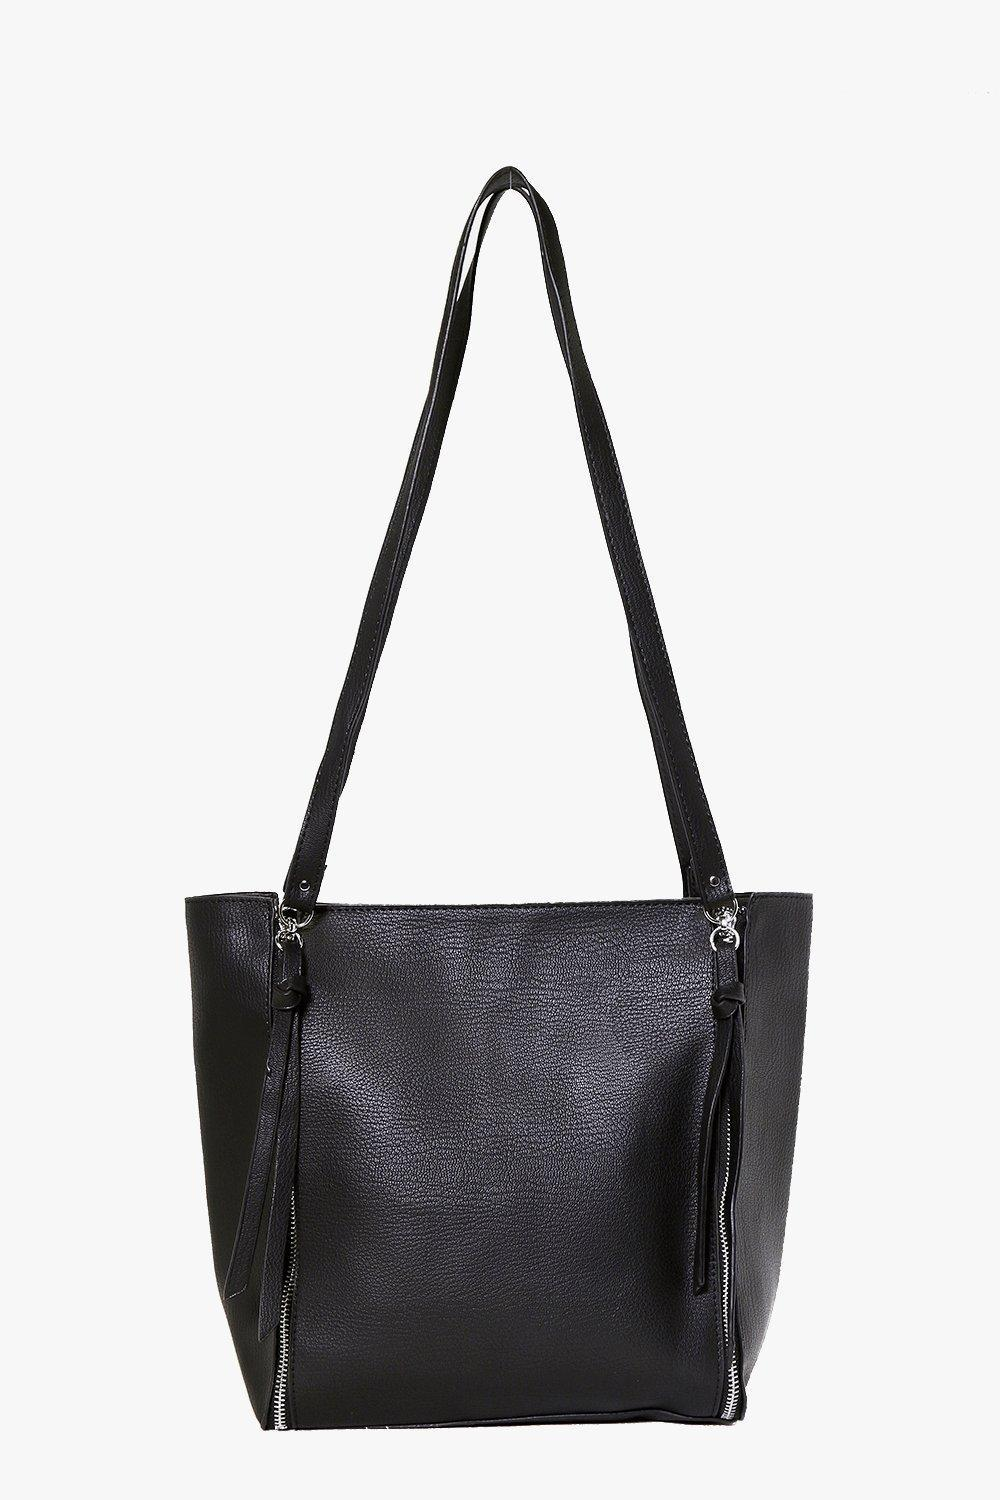 Zip Side Day Bag Black - predominant colour: black; occasions: casual, creative work; type of pattern: standard; style: shoulder; length: shoulder (tucks under arm); size: standard; material: faux leather; pattern: plain; finish: plain; wardrobe: investment; season: a/w 2016